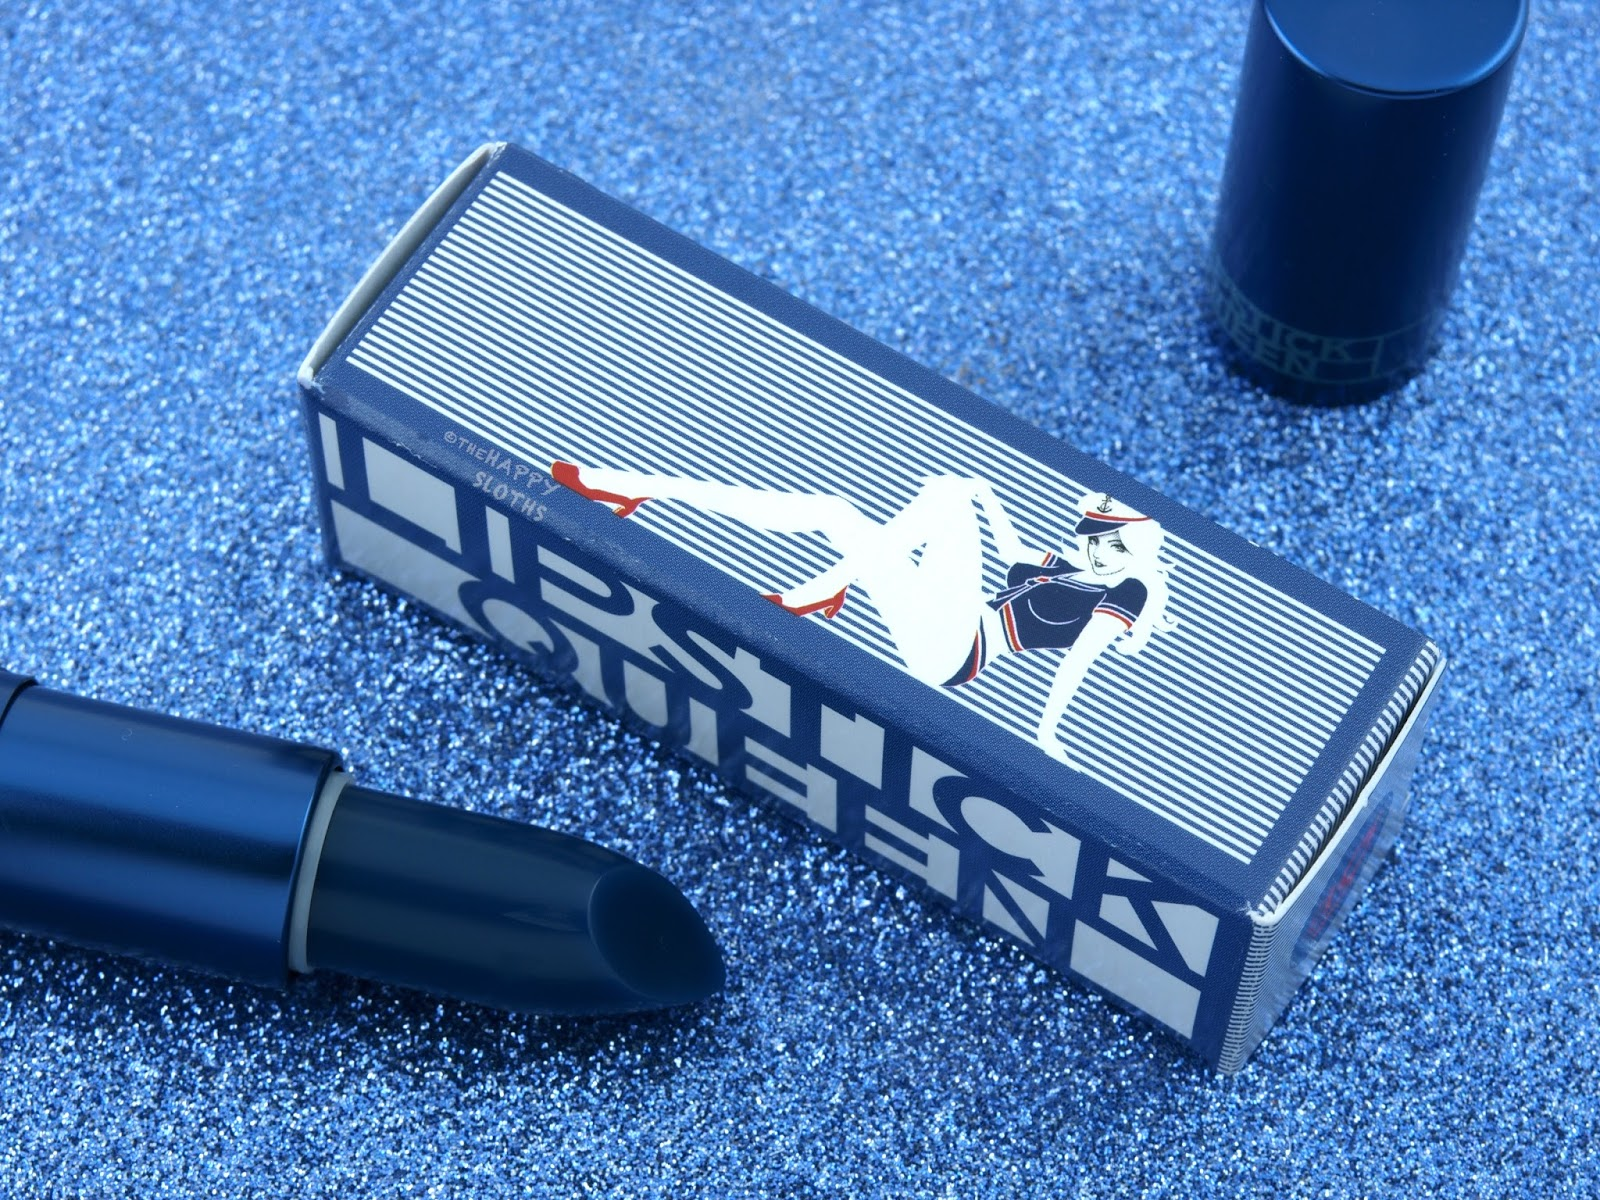 Lipstick Queen Hello Sailor Lipstick: Review and Swatches